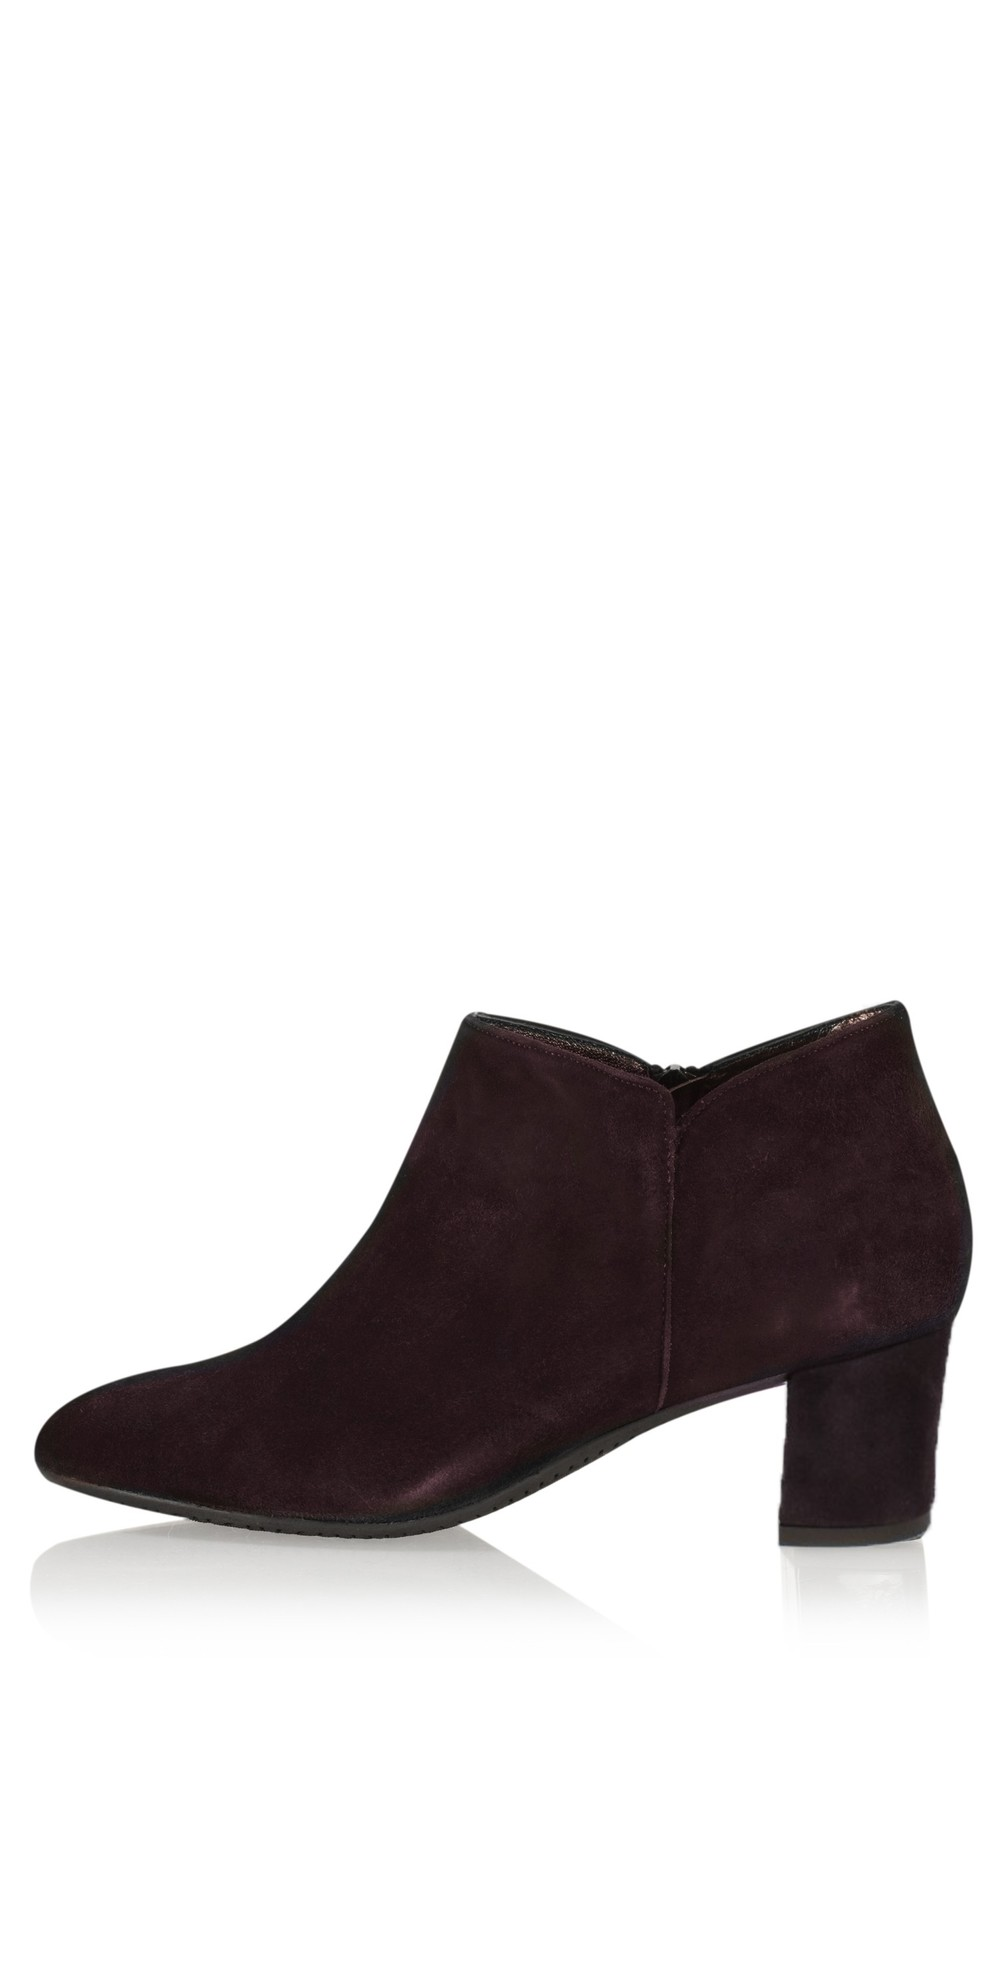 Isco Brown Suede Ankle Boot main image